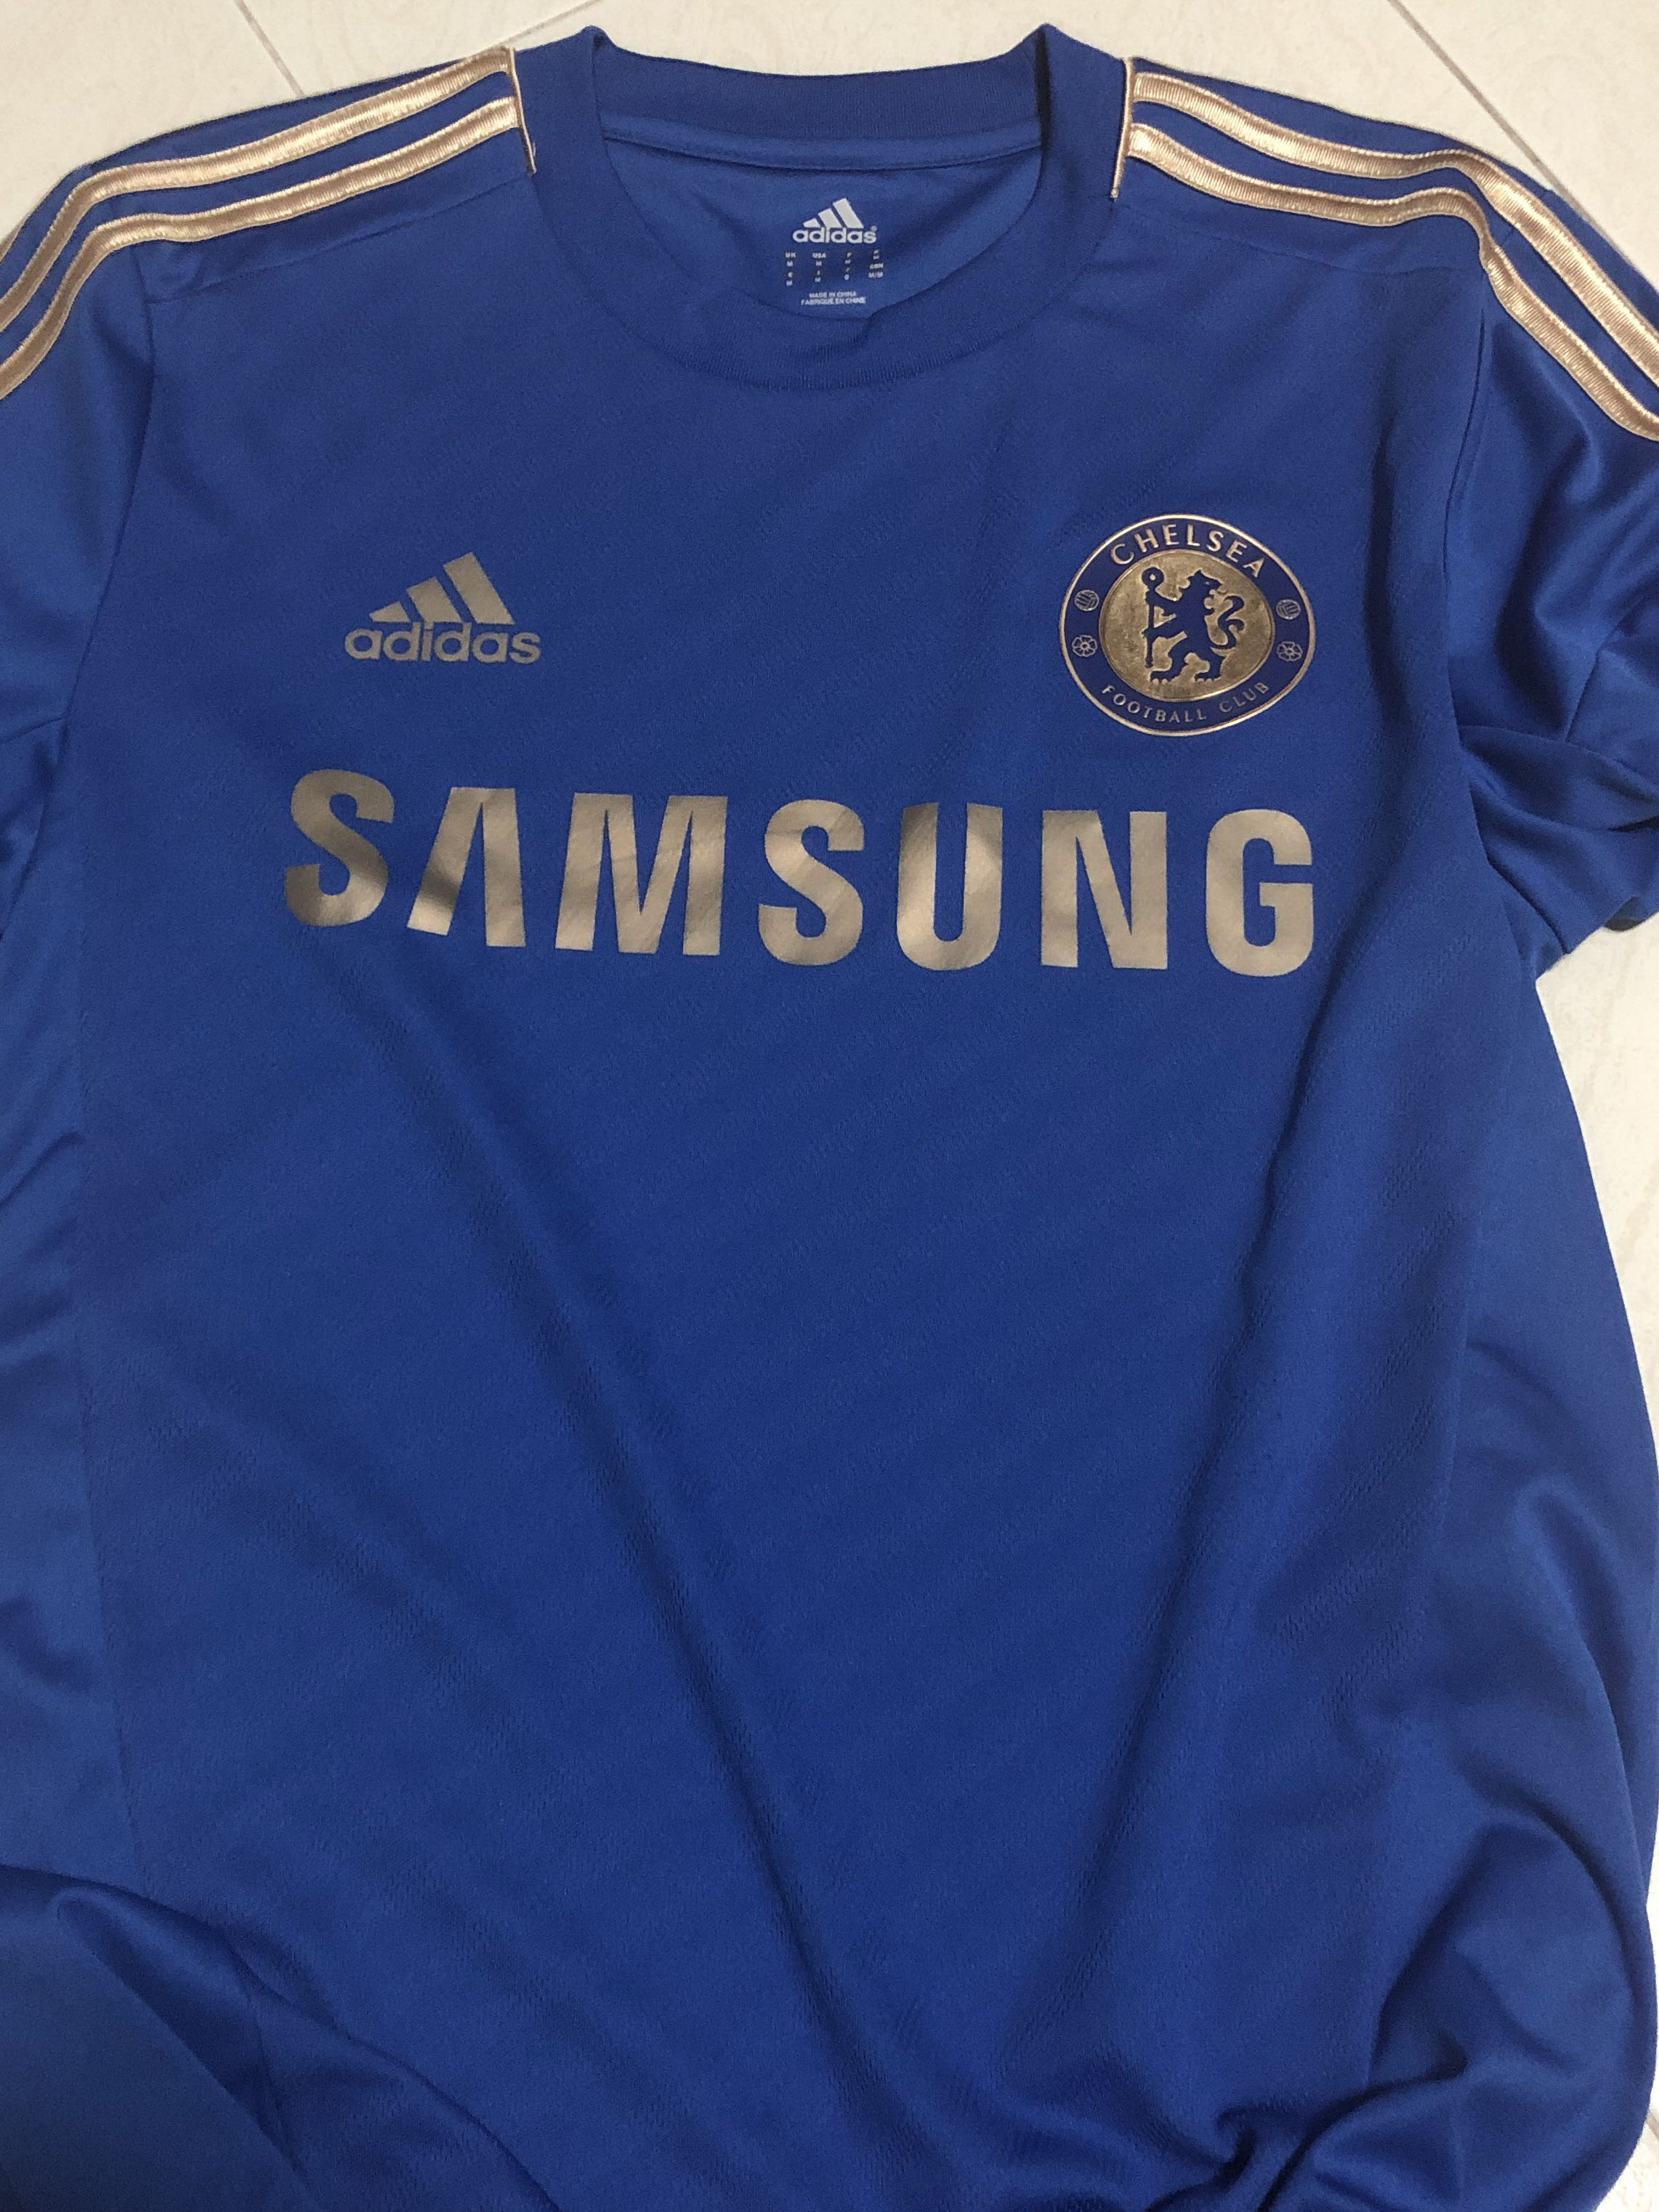 3f6bb653fc7 Chelsea Jersey 2012, Sports, Sports Apparel on Carousell